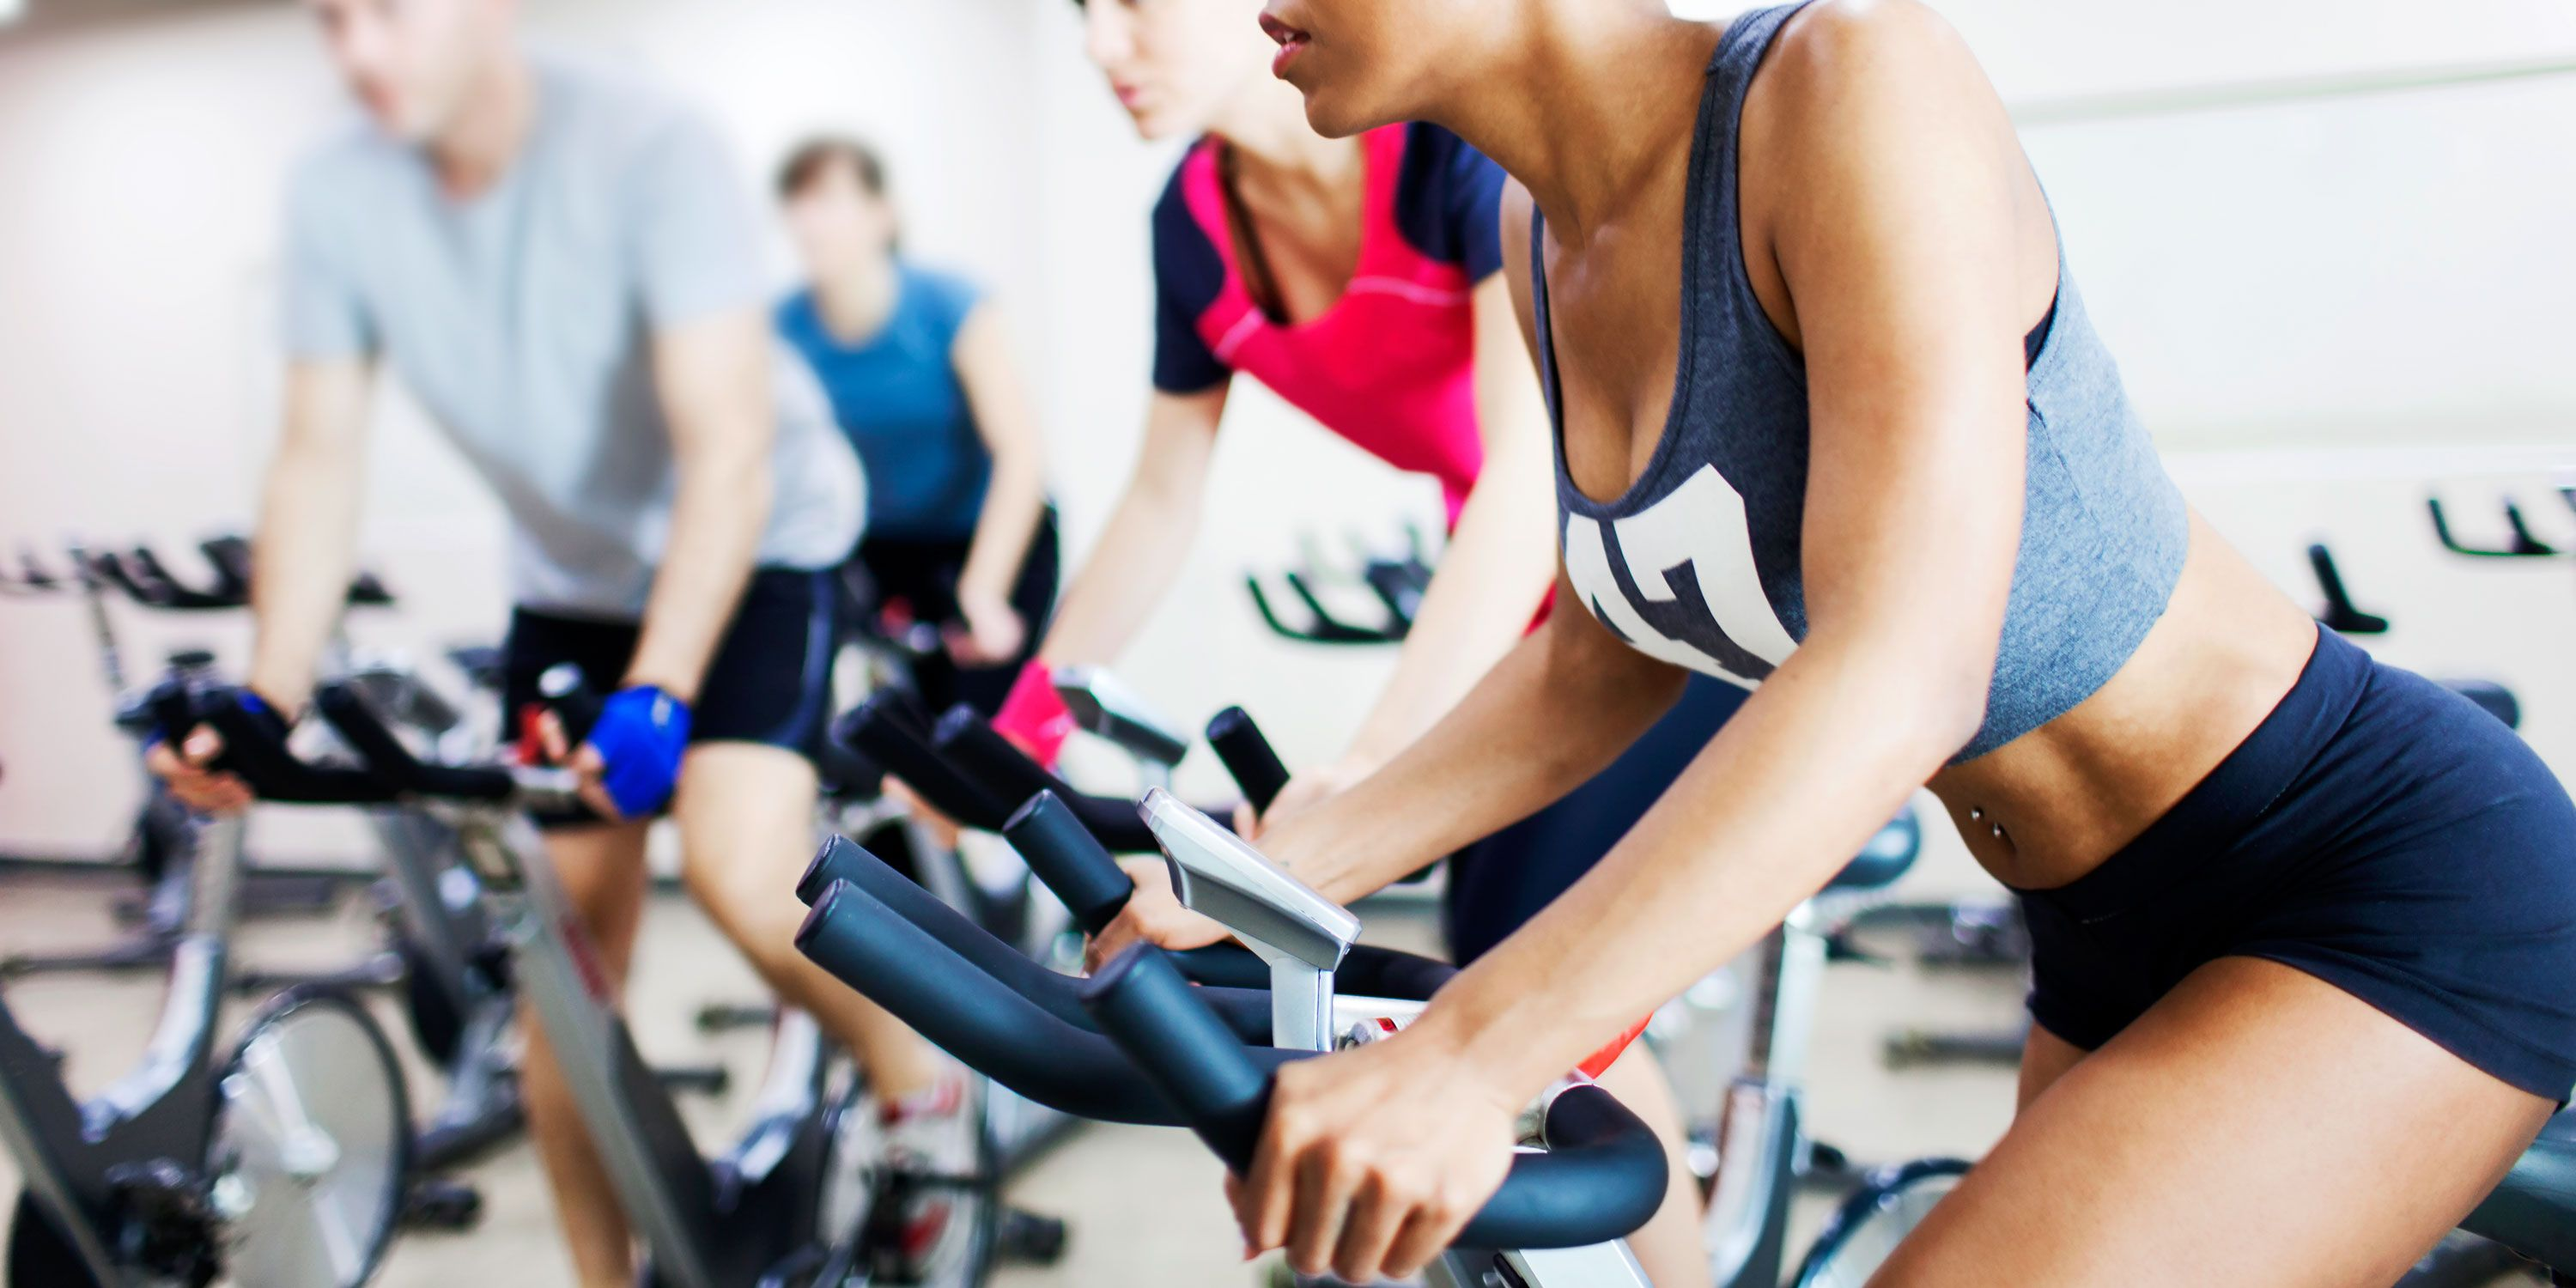 Spinning Can Trigger a LifeThreatening Condition